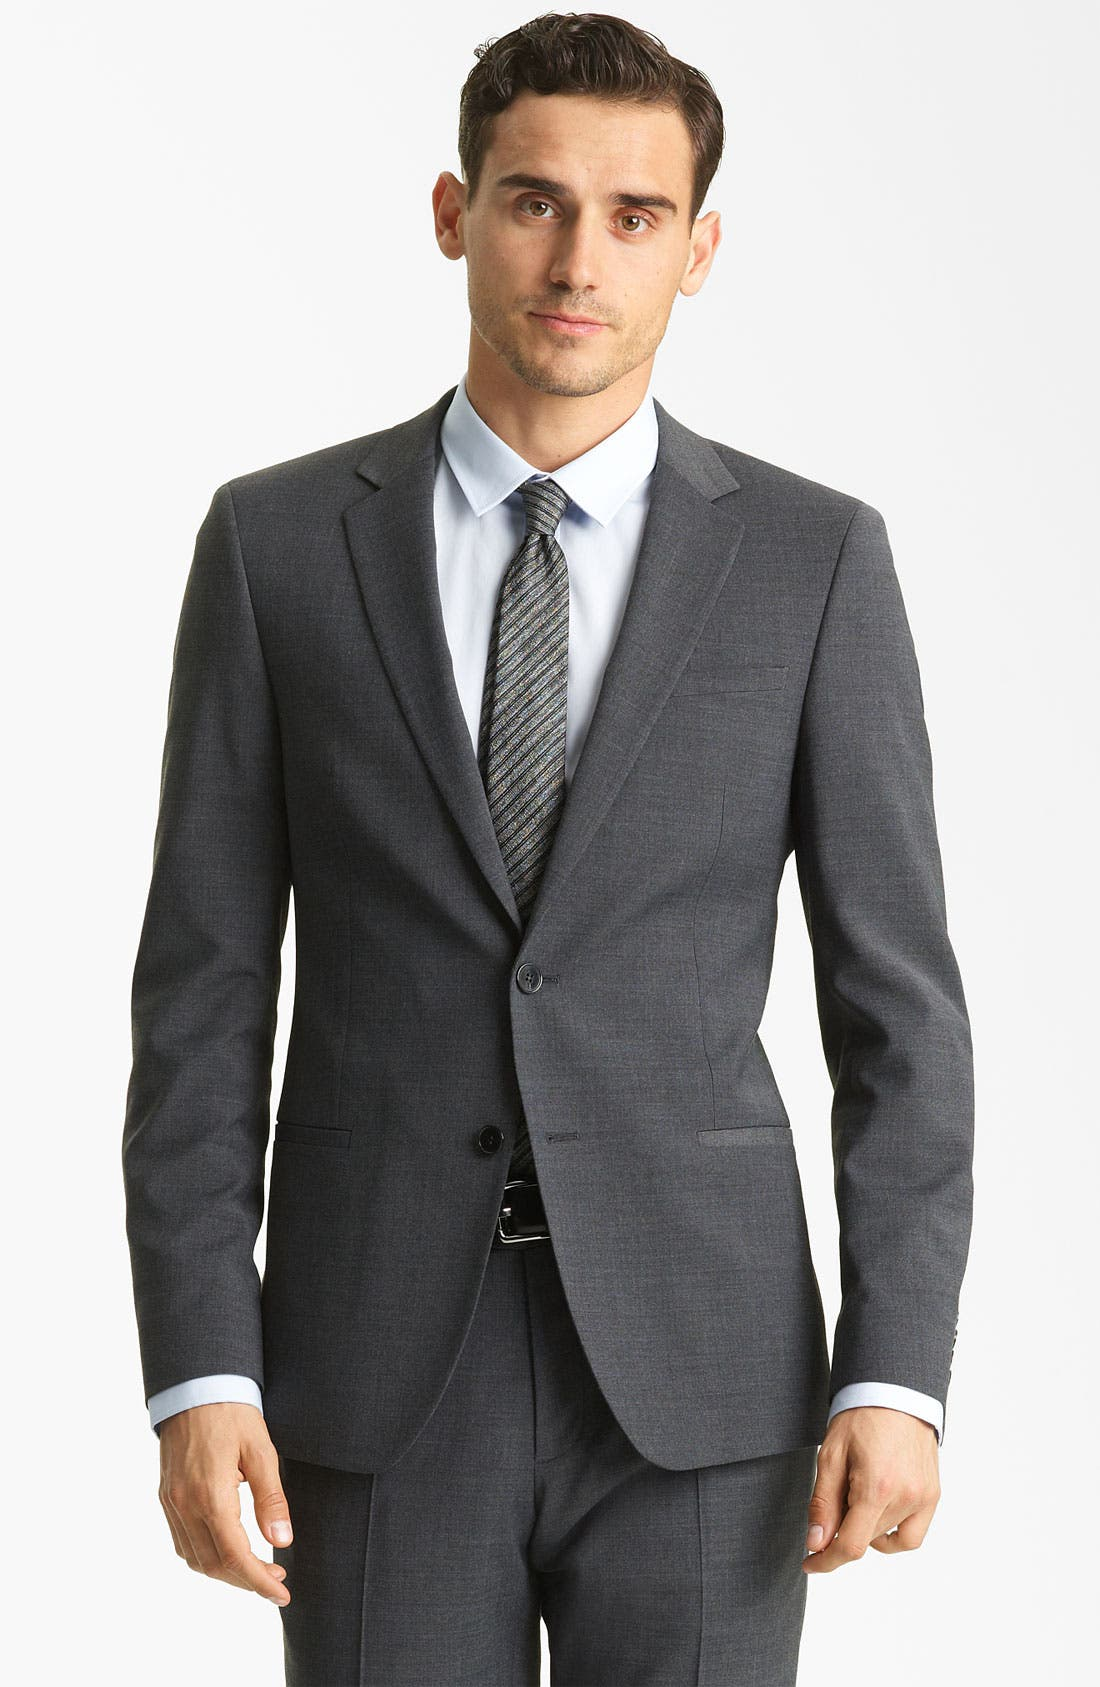 Main Image - Dolce&Gabbana Solid Suit